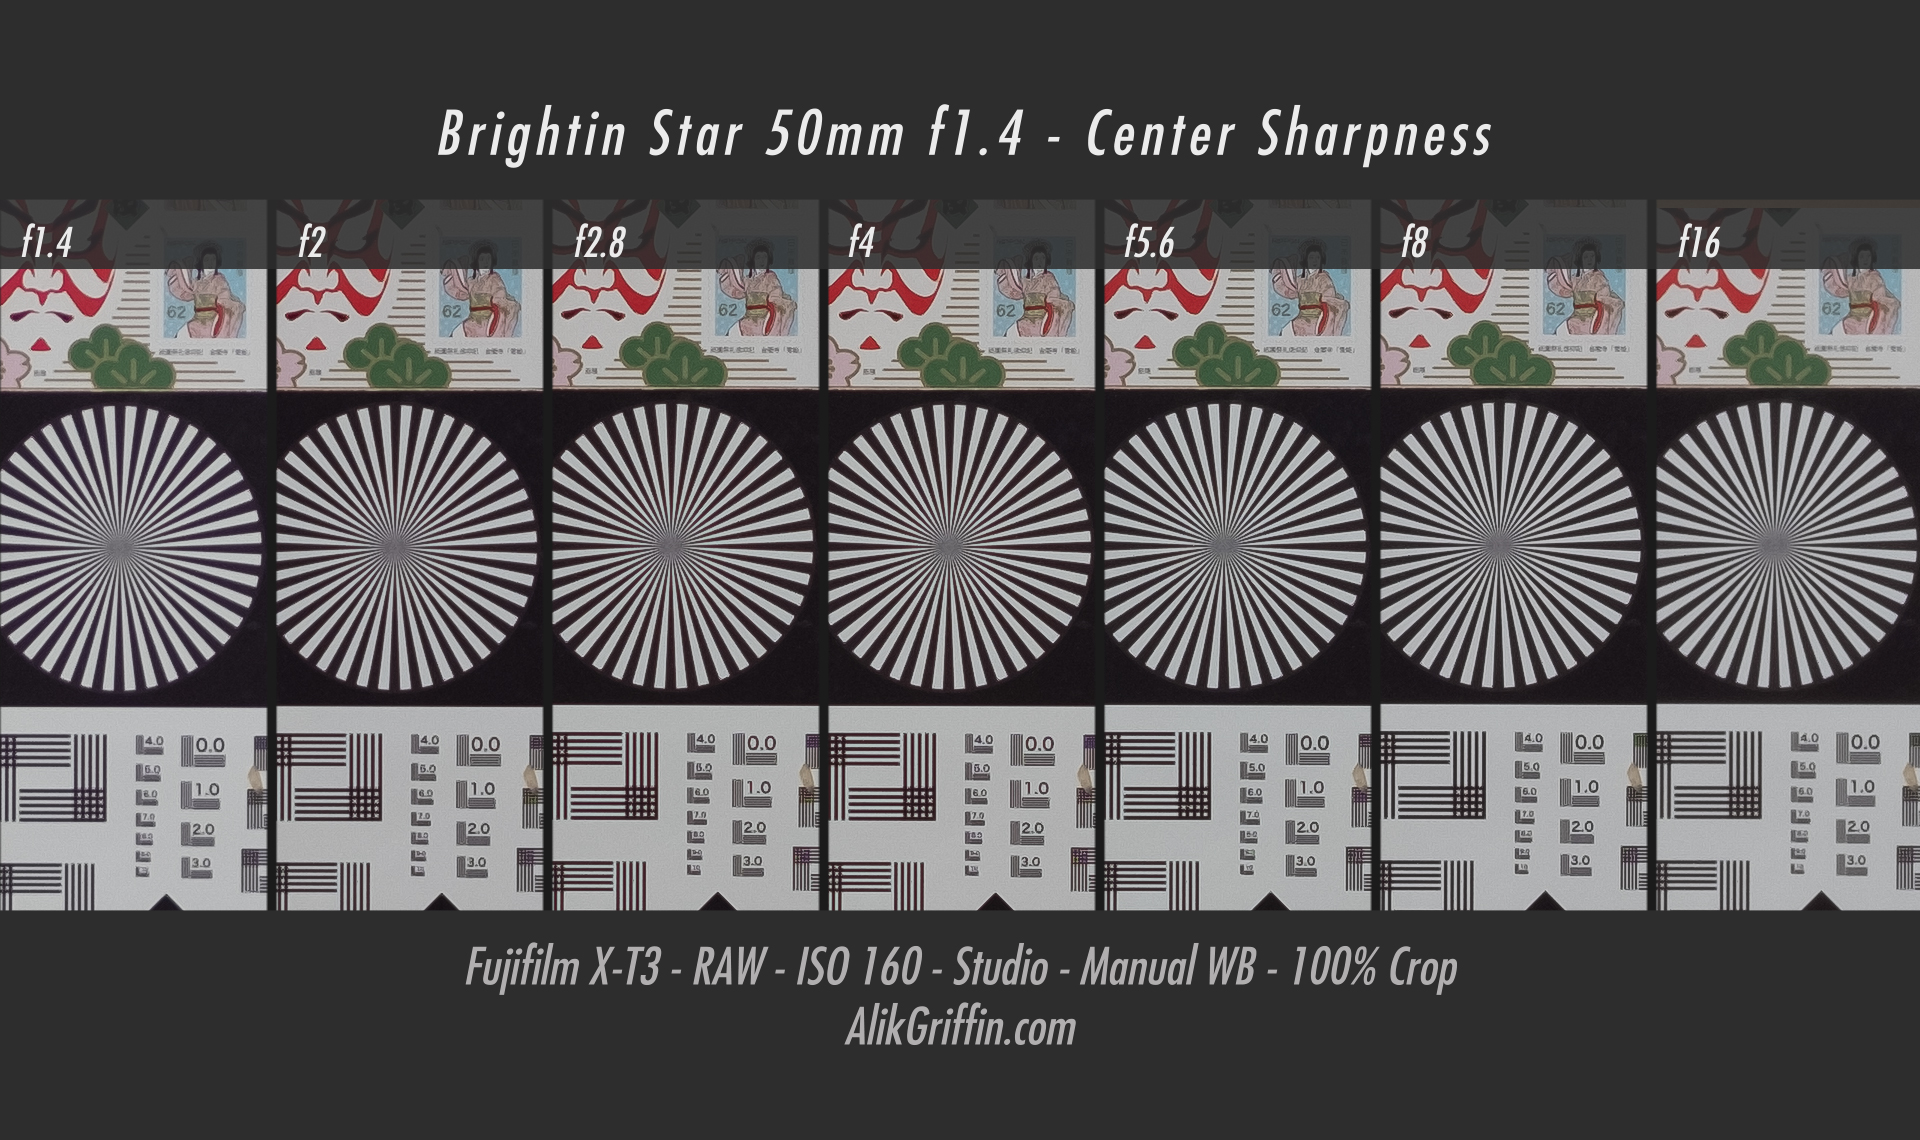 Brightin Star 50mm f1.4 Center Sharpness Chart